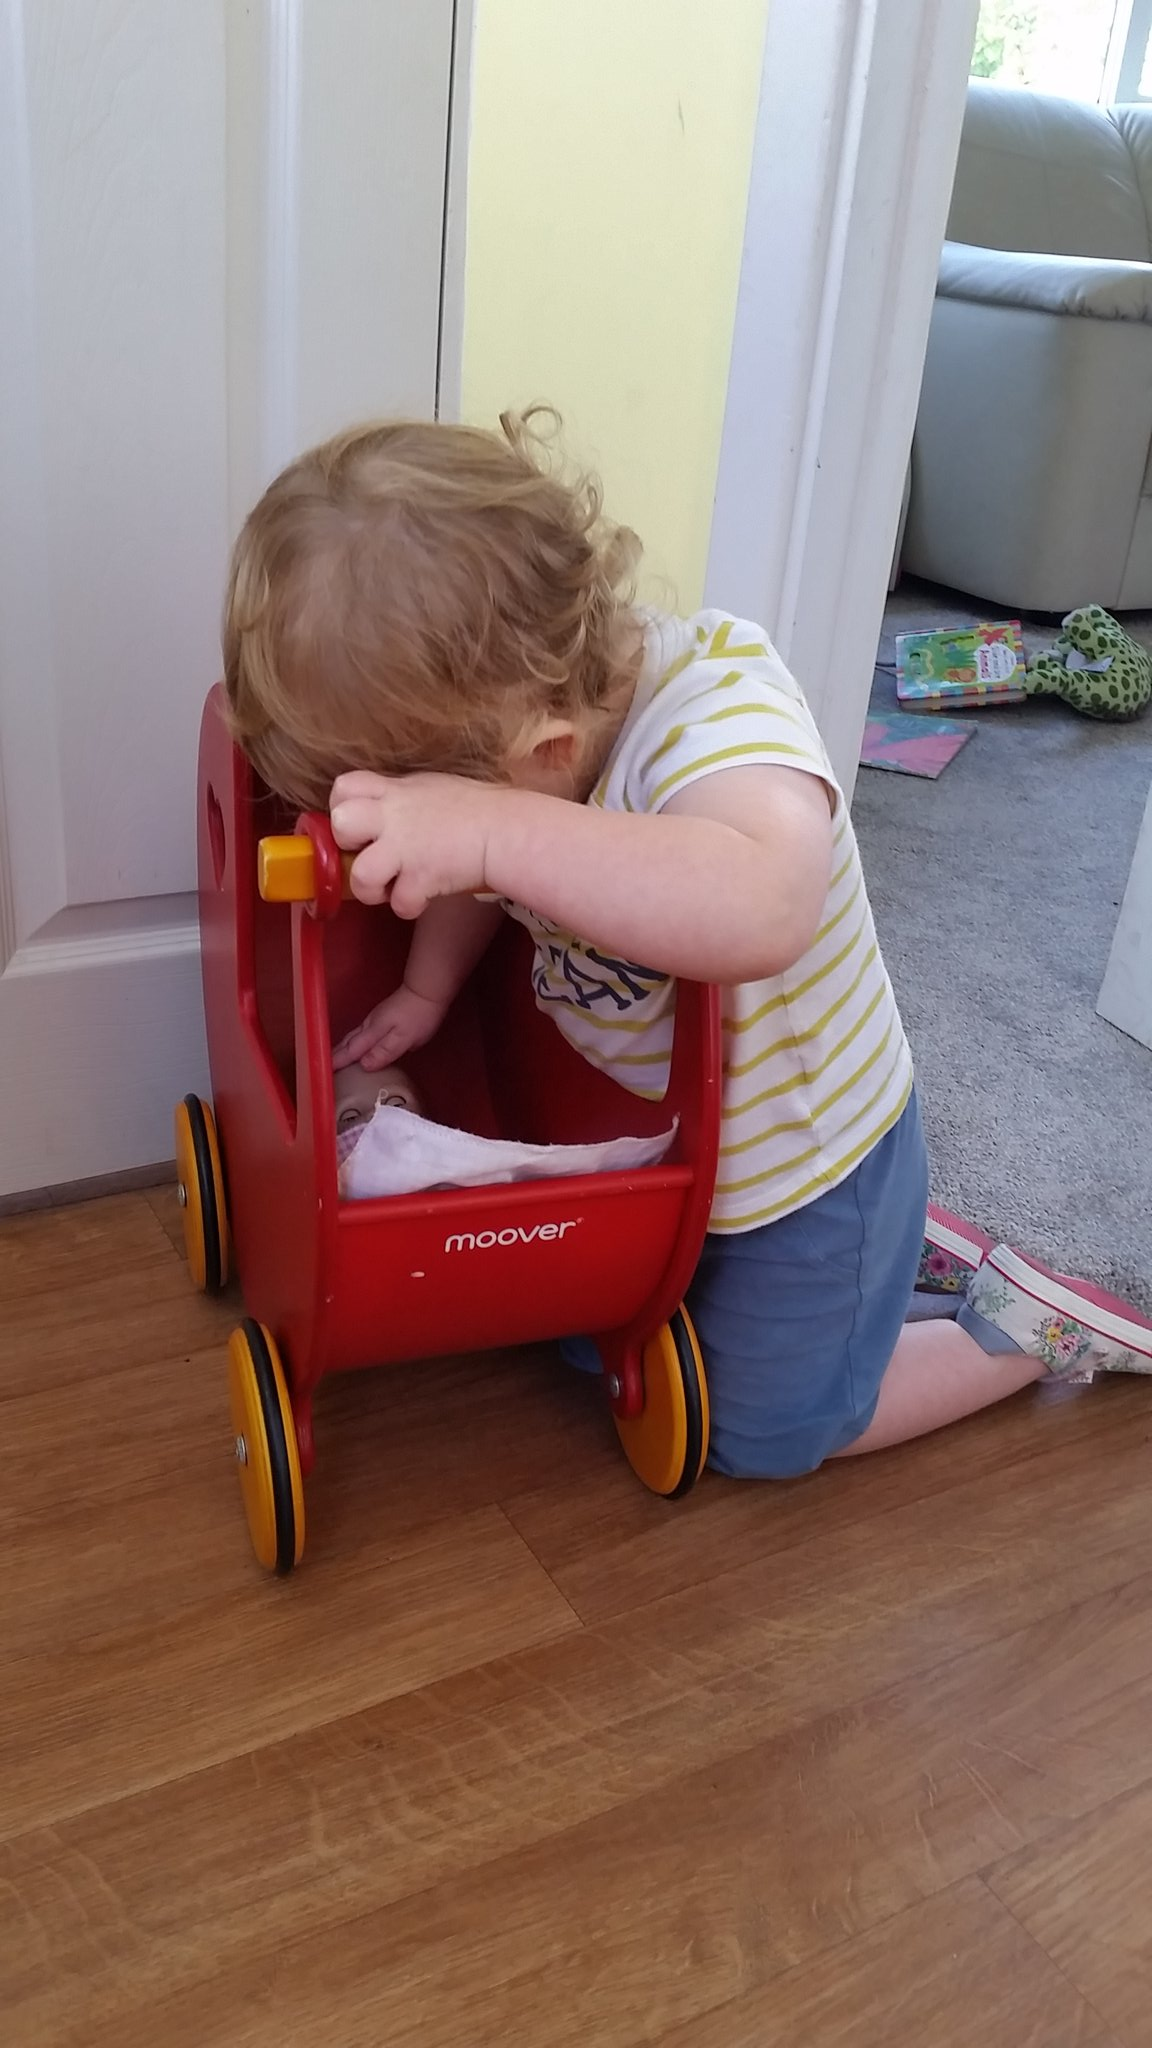 @LetToysBeToys Thought I'd share this of my son putting the baby to sleep wearing his sister's shoes! #caringboys https://t.co/dcCaEayruB